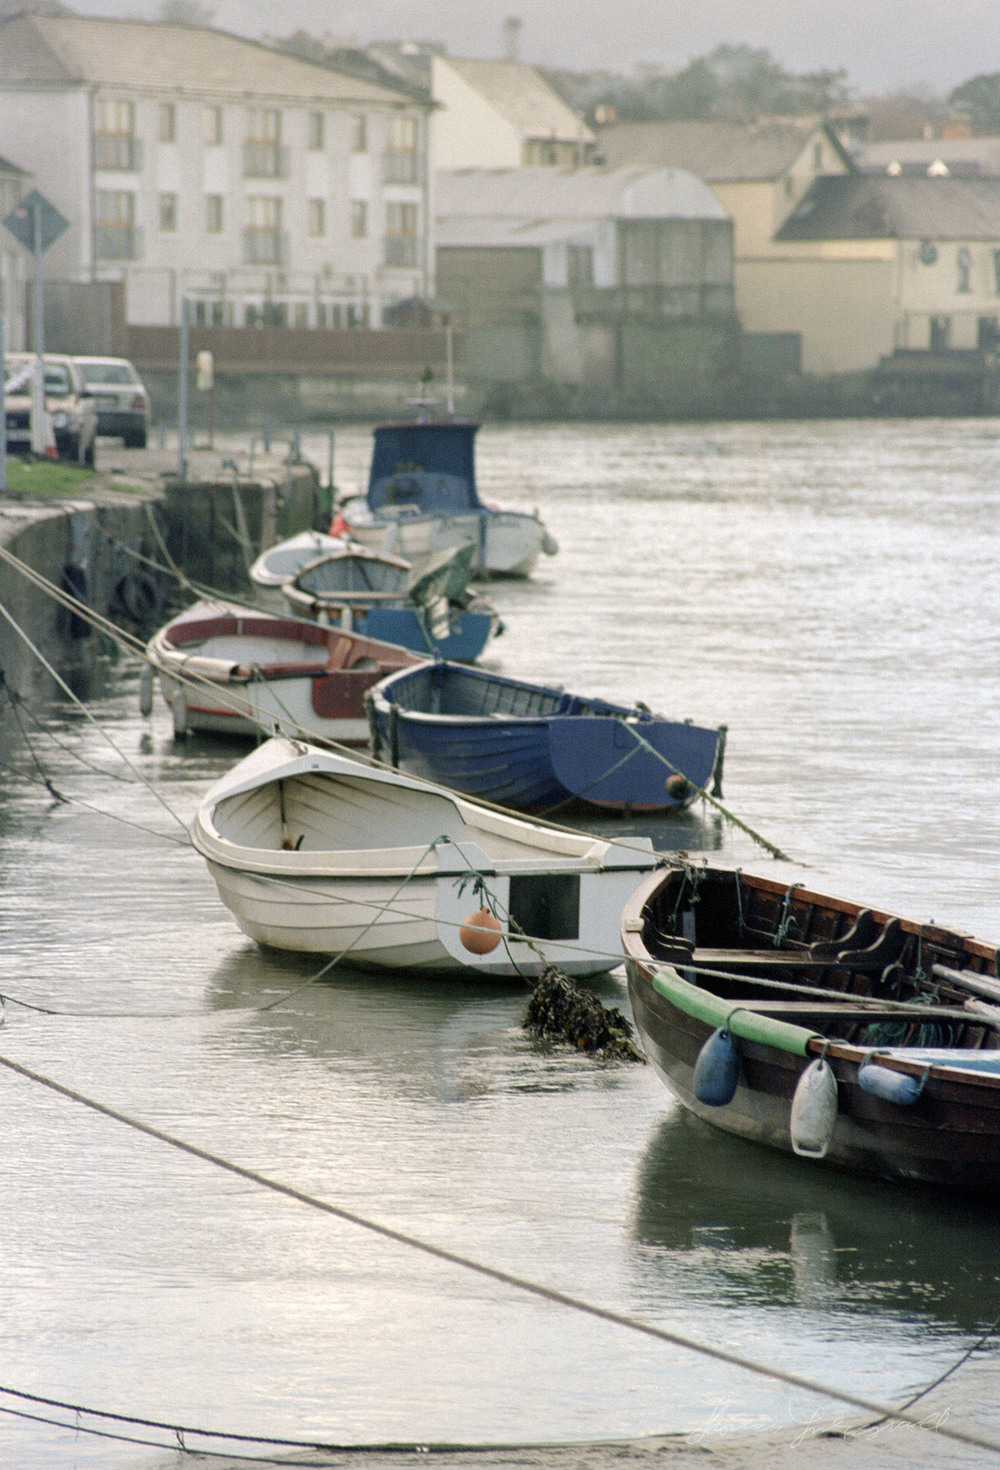 wicklow-boats5.jpg